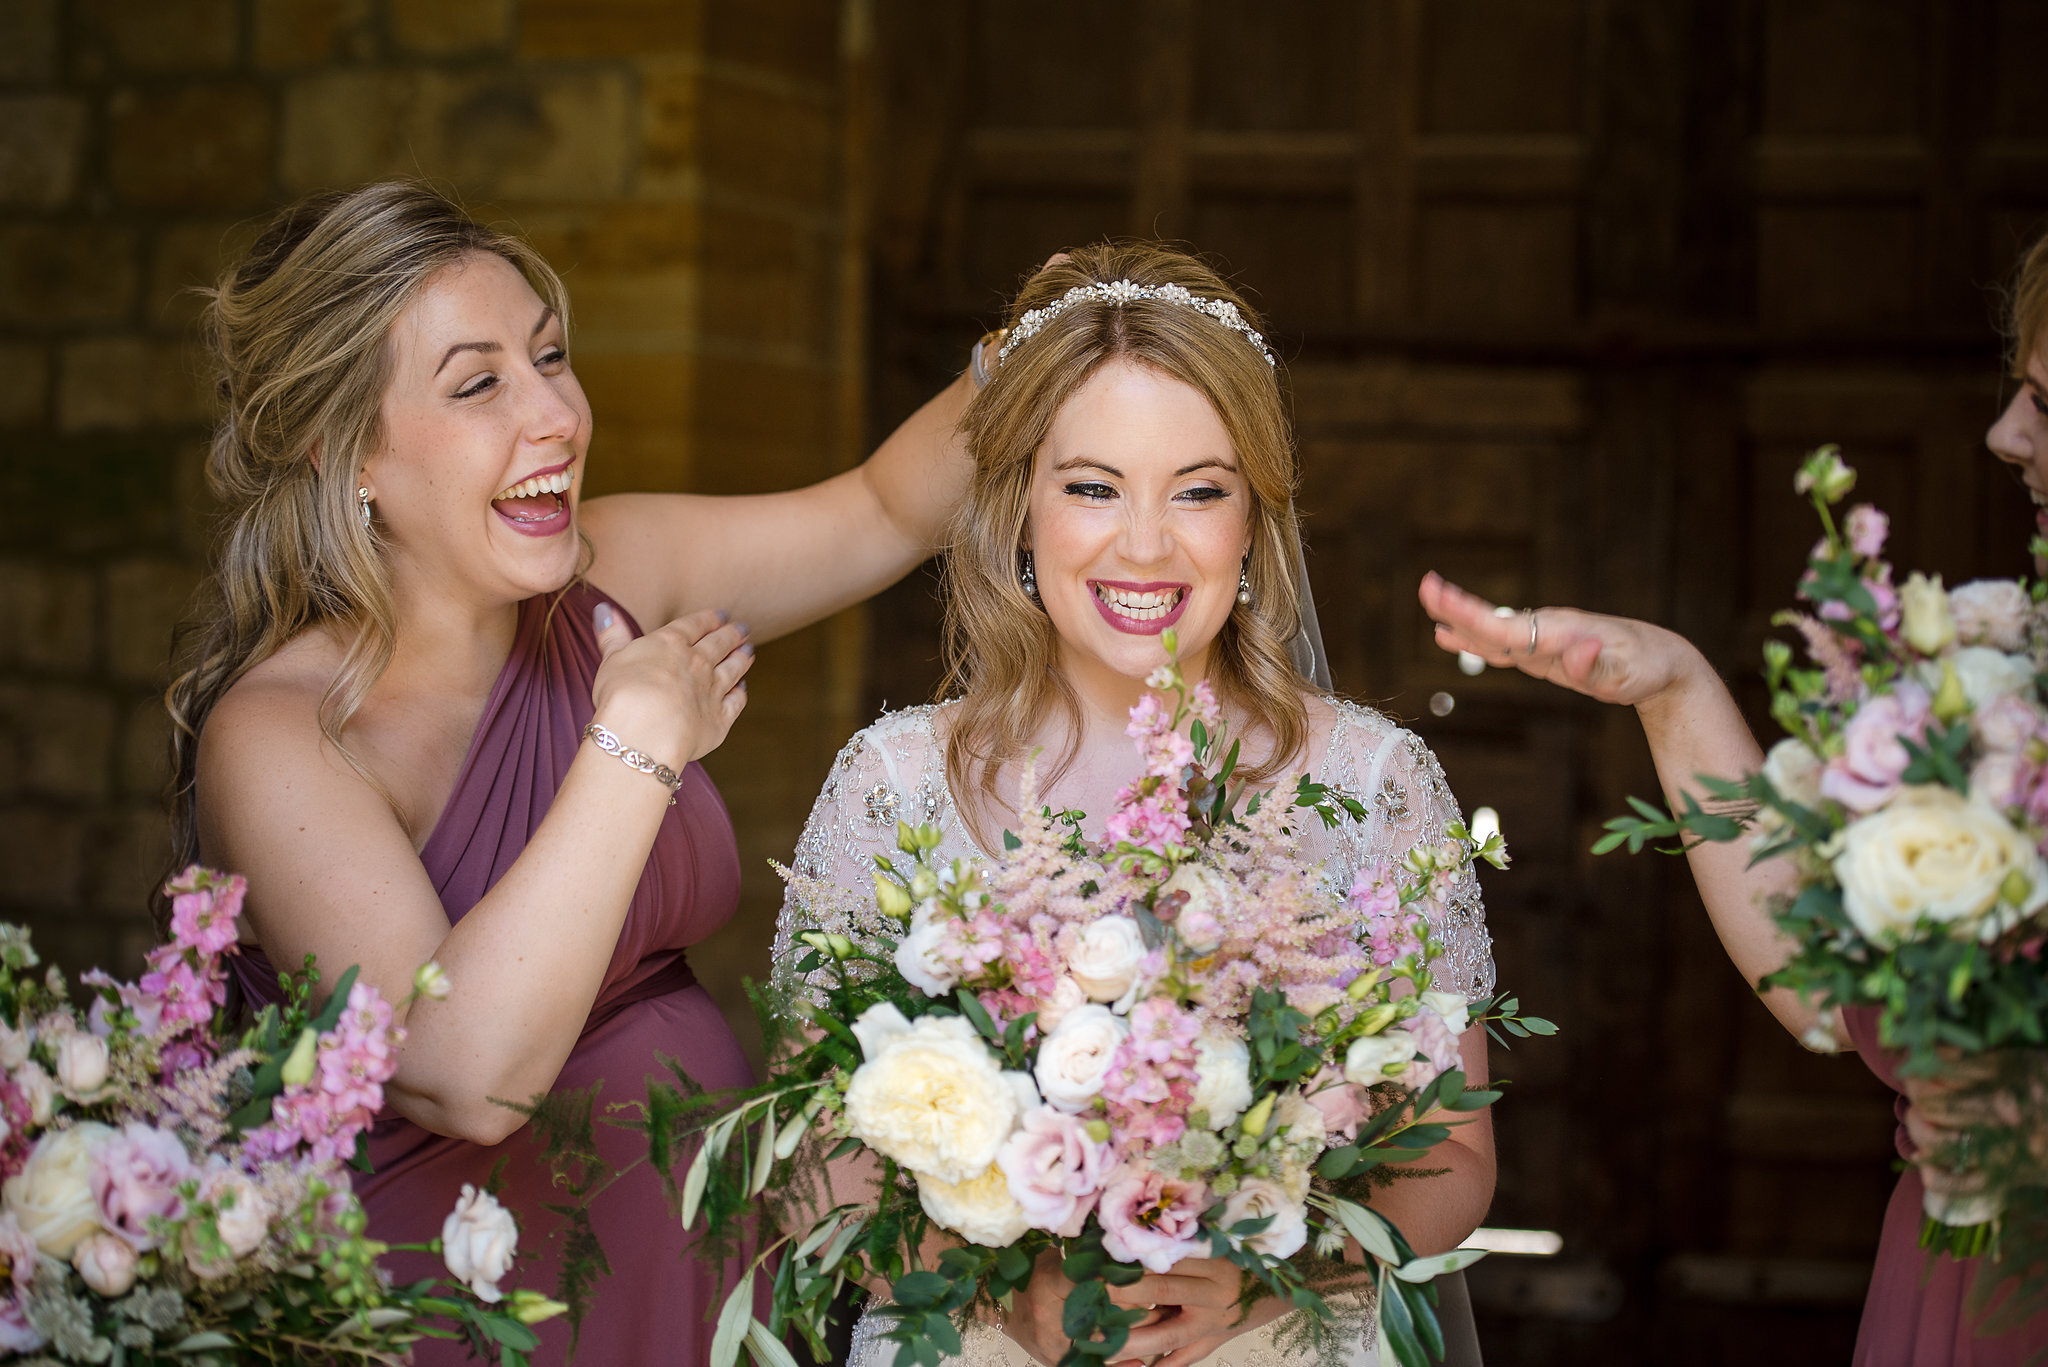 Bride and Bridesmaid's hair and make up by Powder and Pin - Photography by Penny Young; https://www.pennyyoungphotography.com/